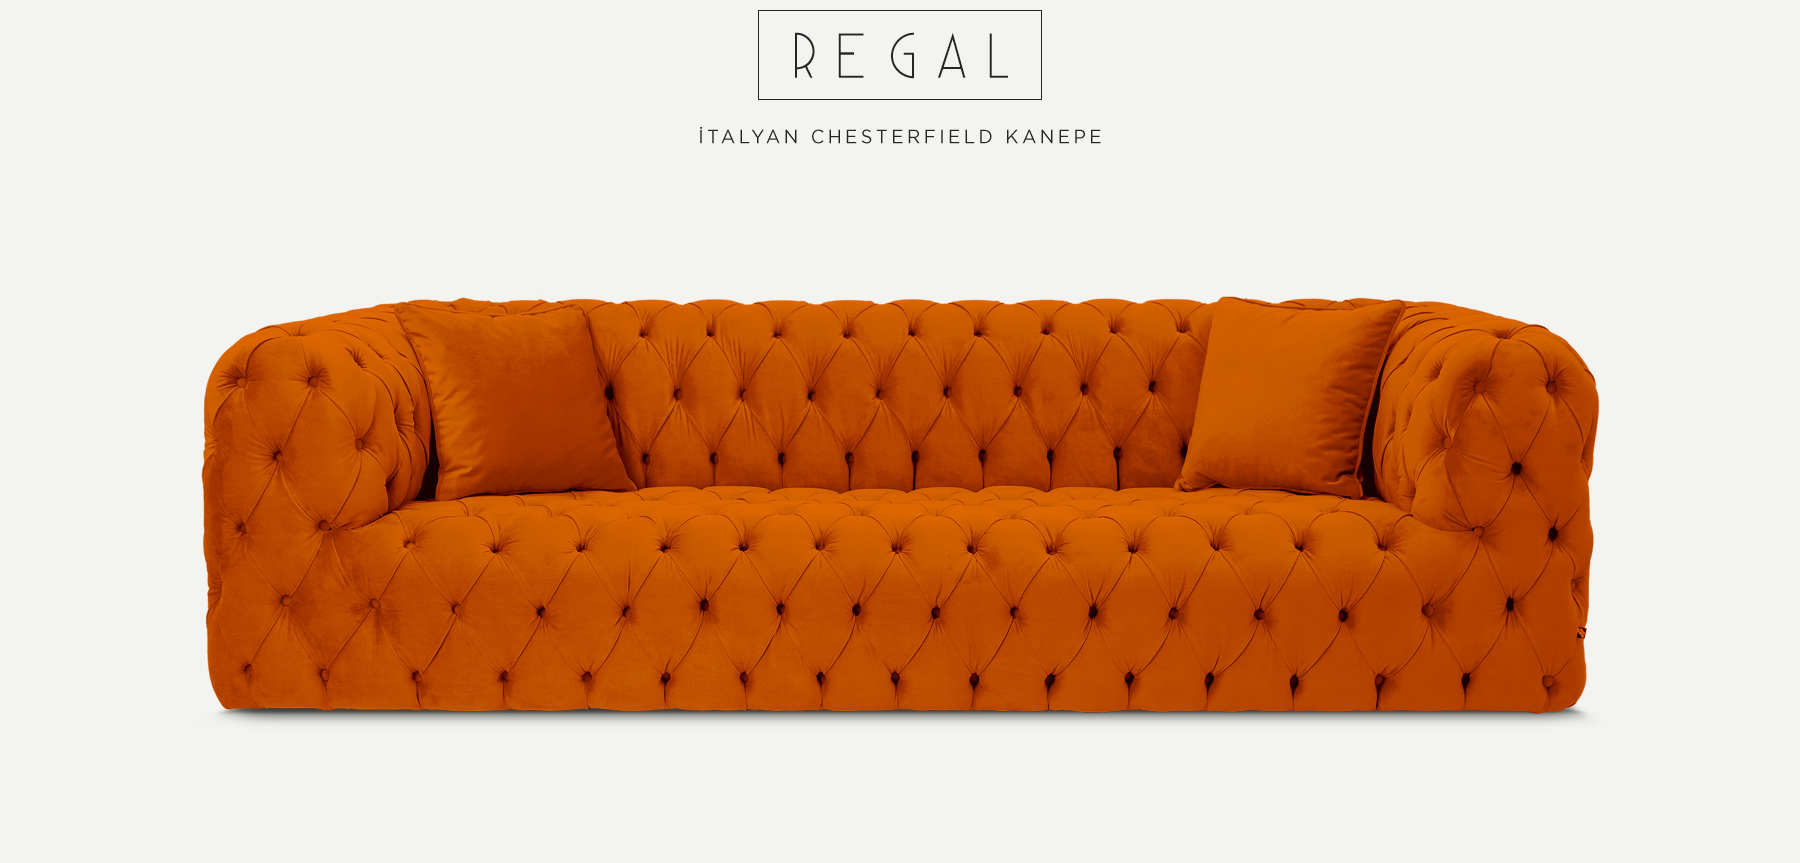 REGAL ÜÇLÜ TURUNCU İTALYAN CHESTERFIELD'in resmi